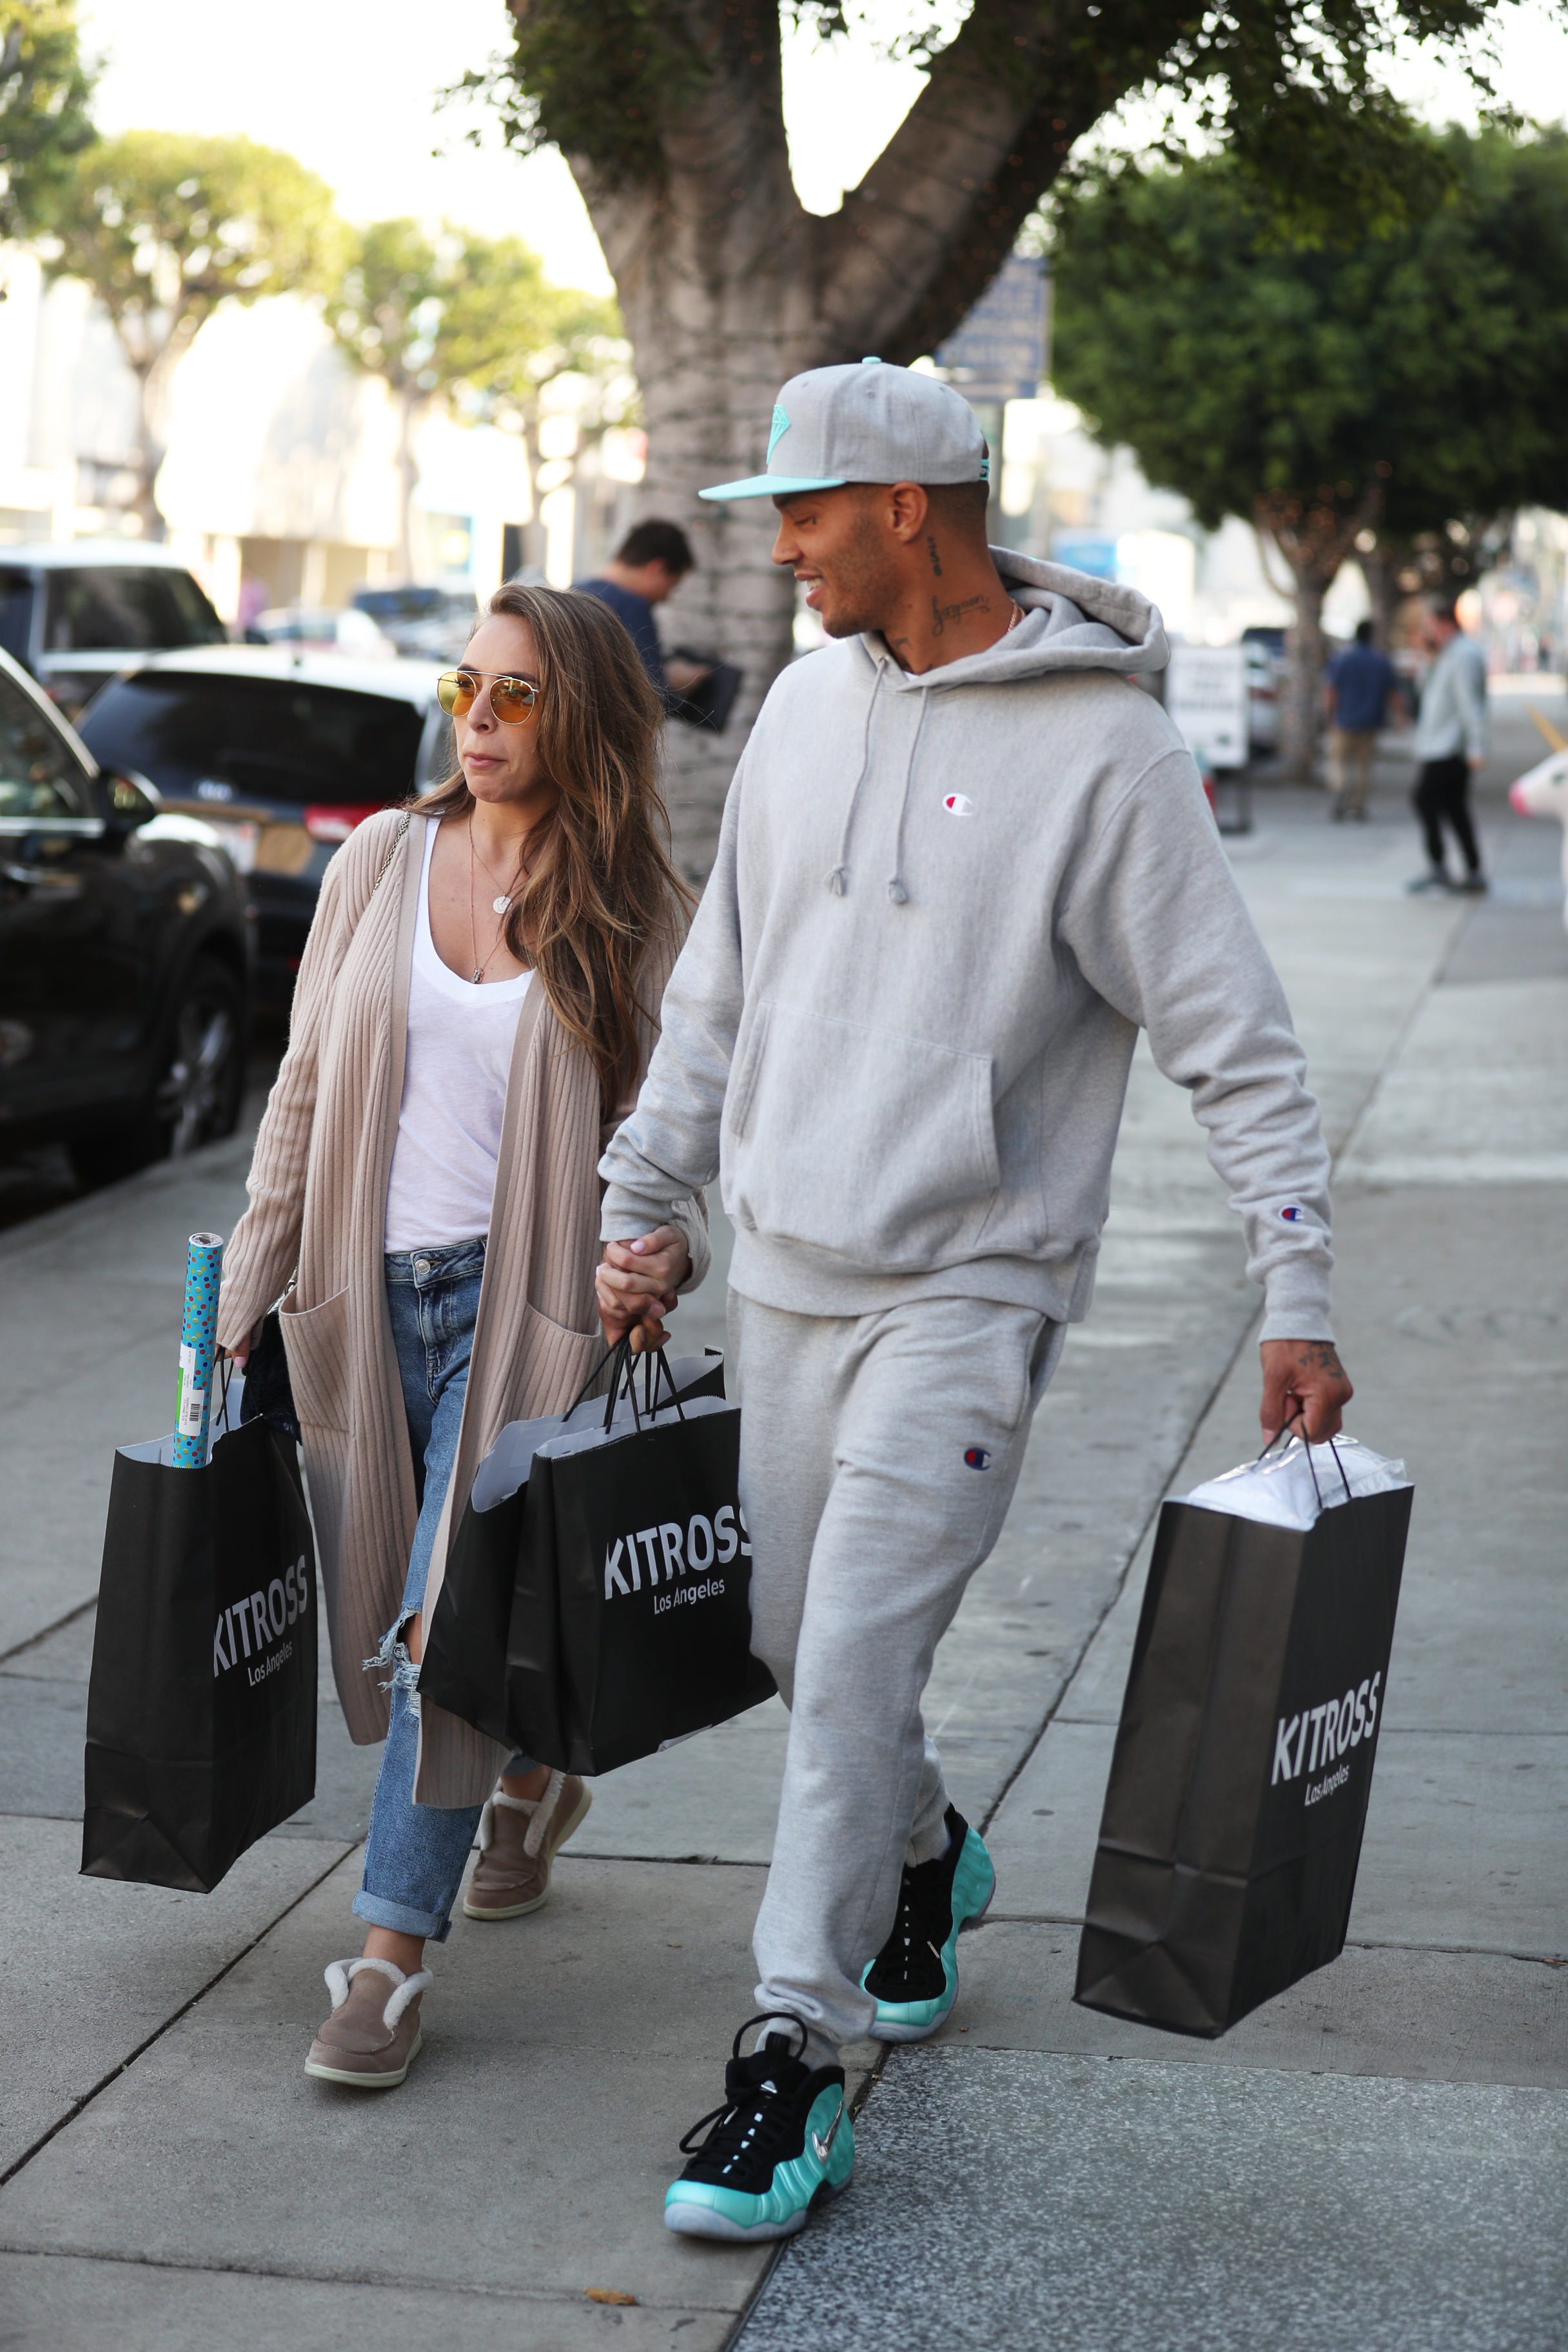 Jeremy Meeks and Chloe Green go Christmas shopping at Kitross in LA <P> Pictured: Jeremy Meeks, Chloe Green <B>Ref: SPL1633926  061217  </B><BR/> Picture by: Xxplosive / Splash News<BR/> </P><P> <B>Splash News and Pictures</B><BR/> Los Angeles:	310-821-2666<BR/> New York:	212-619-2666<BR/> London:	870-934-2666<BR/> <span id=